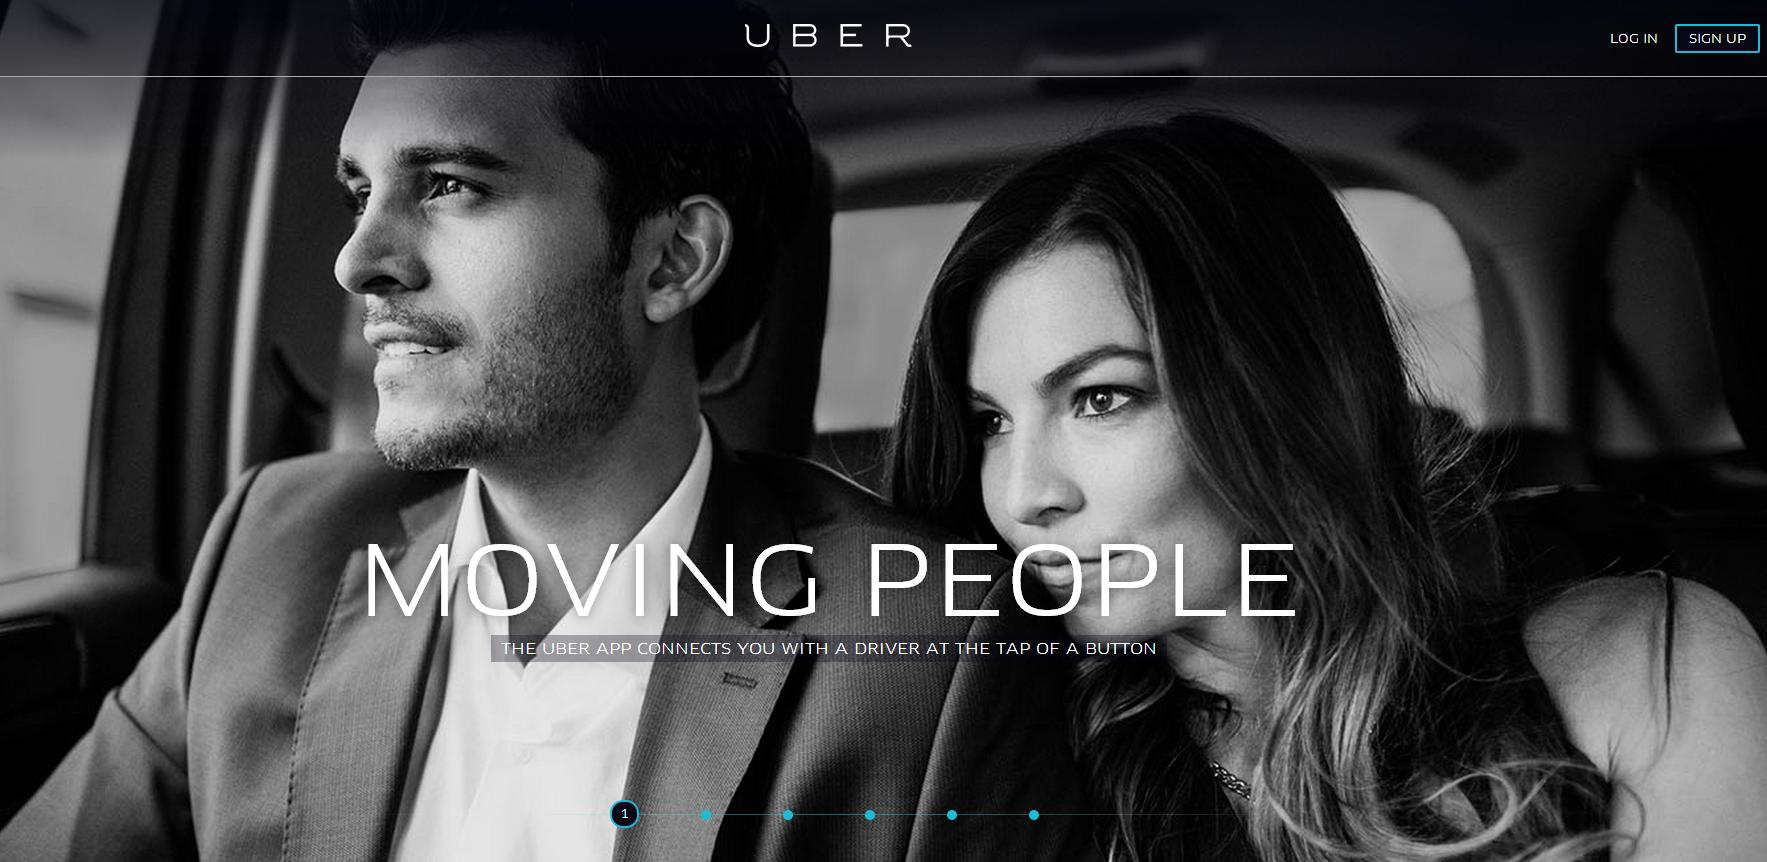 Luxury Driver Service with £10 free – Uber